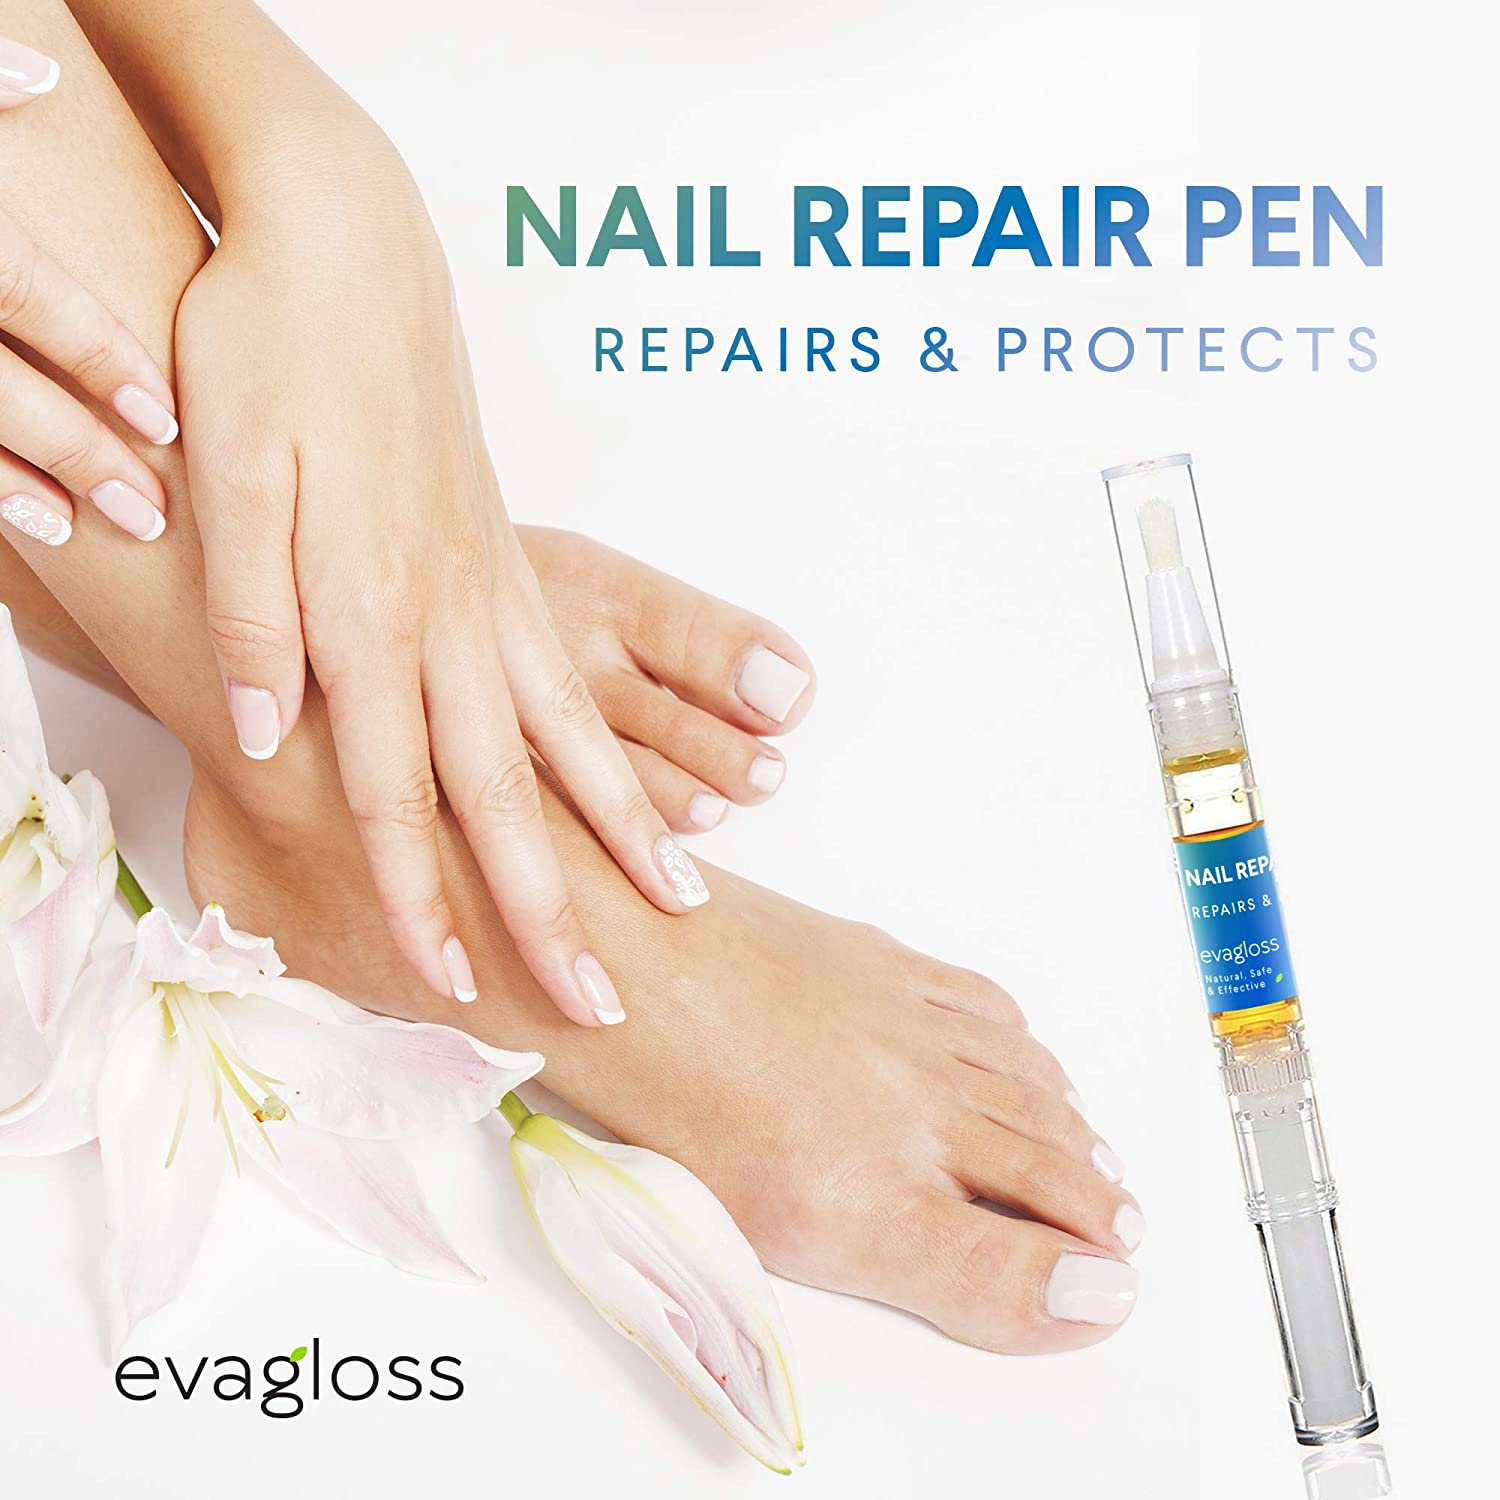 Fungus Stop Nail Repair Pen  Fungus Nail Care on Toenails  Fingernails Strengthen and Repairs